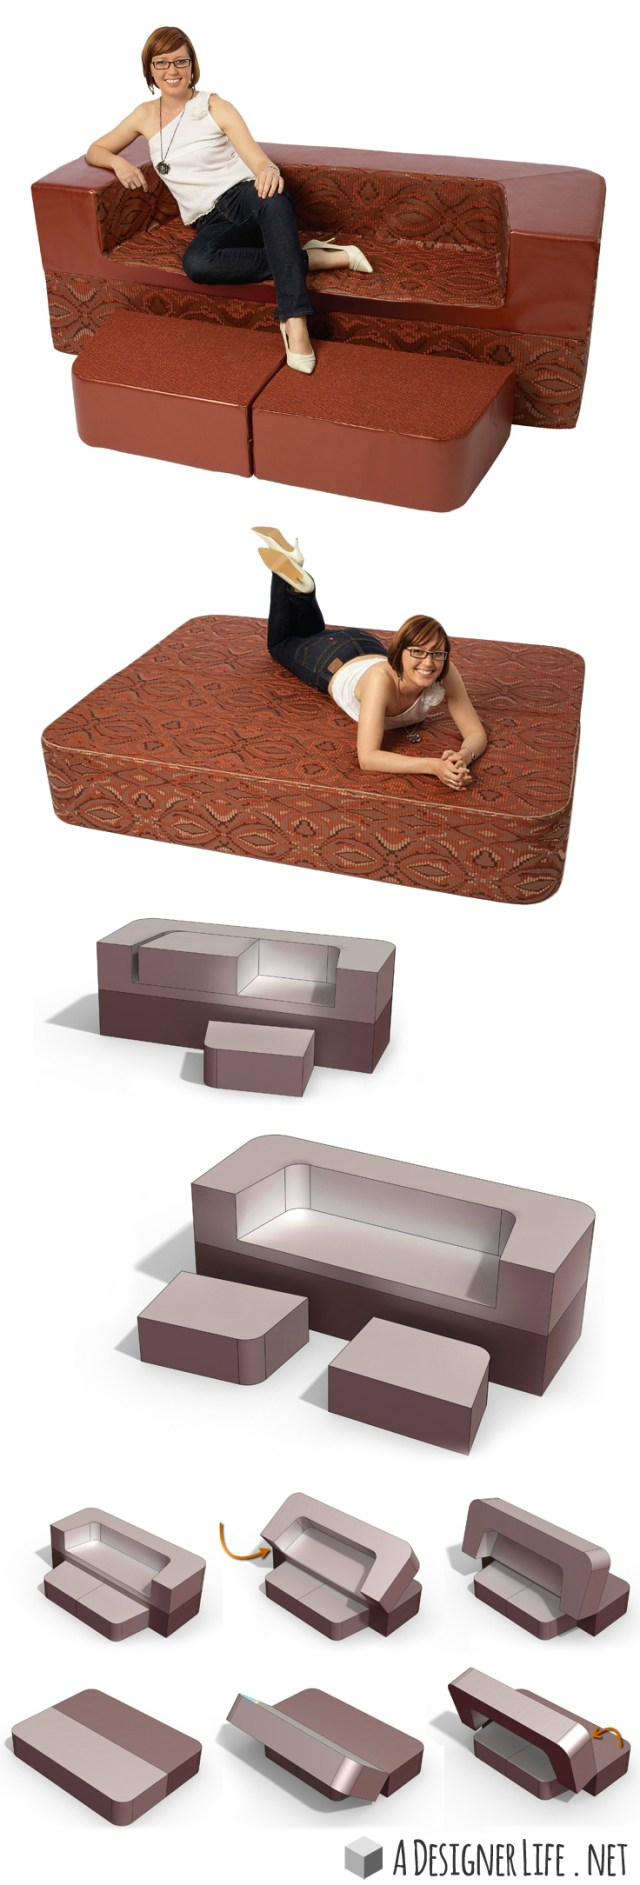 This convertible sofa creates a double bed in 3 seconds - brilliant! #product_design